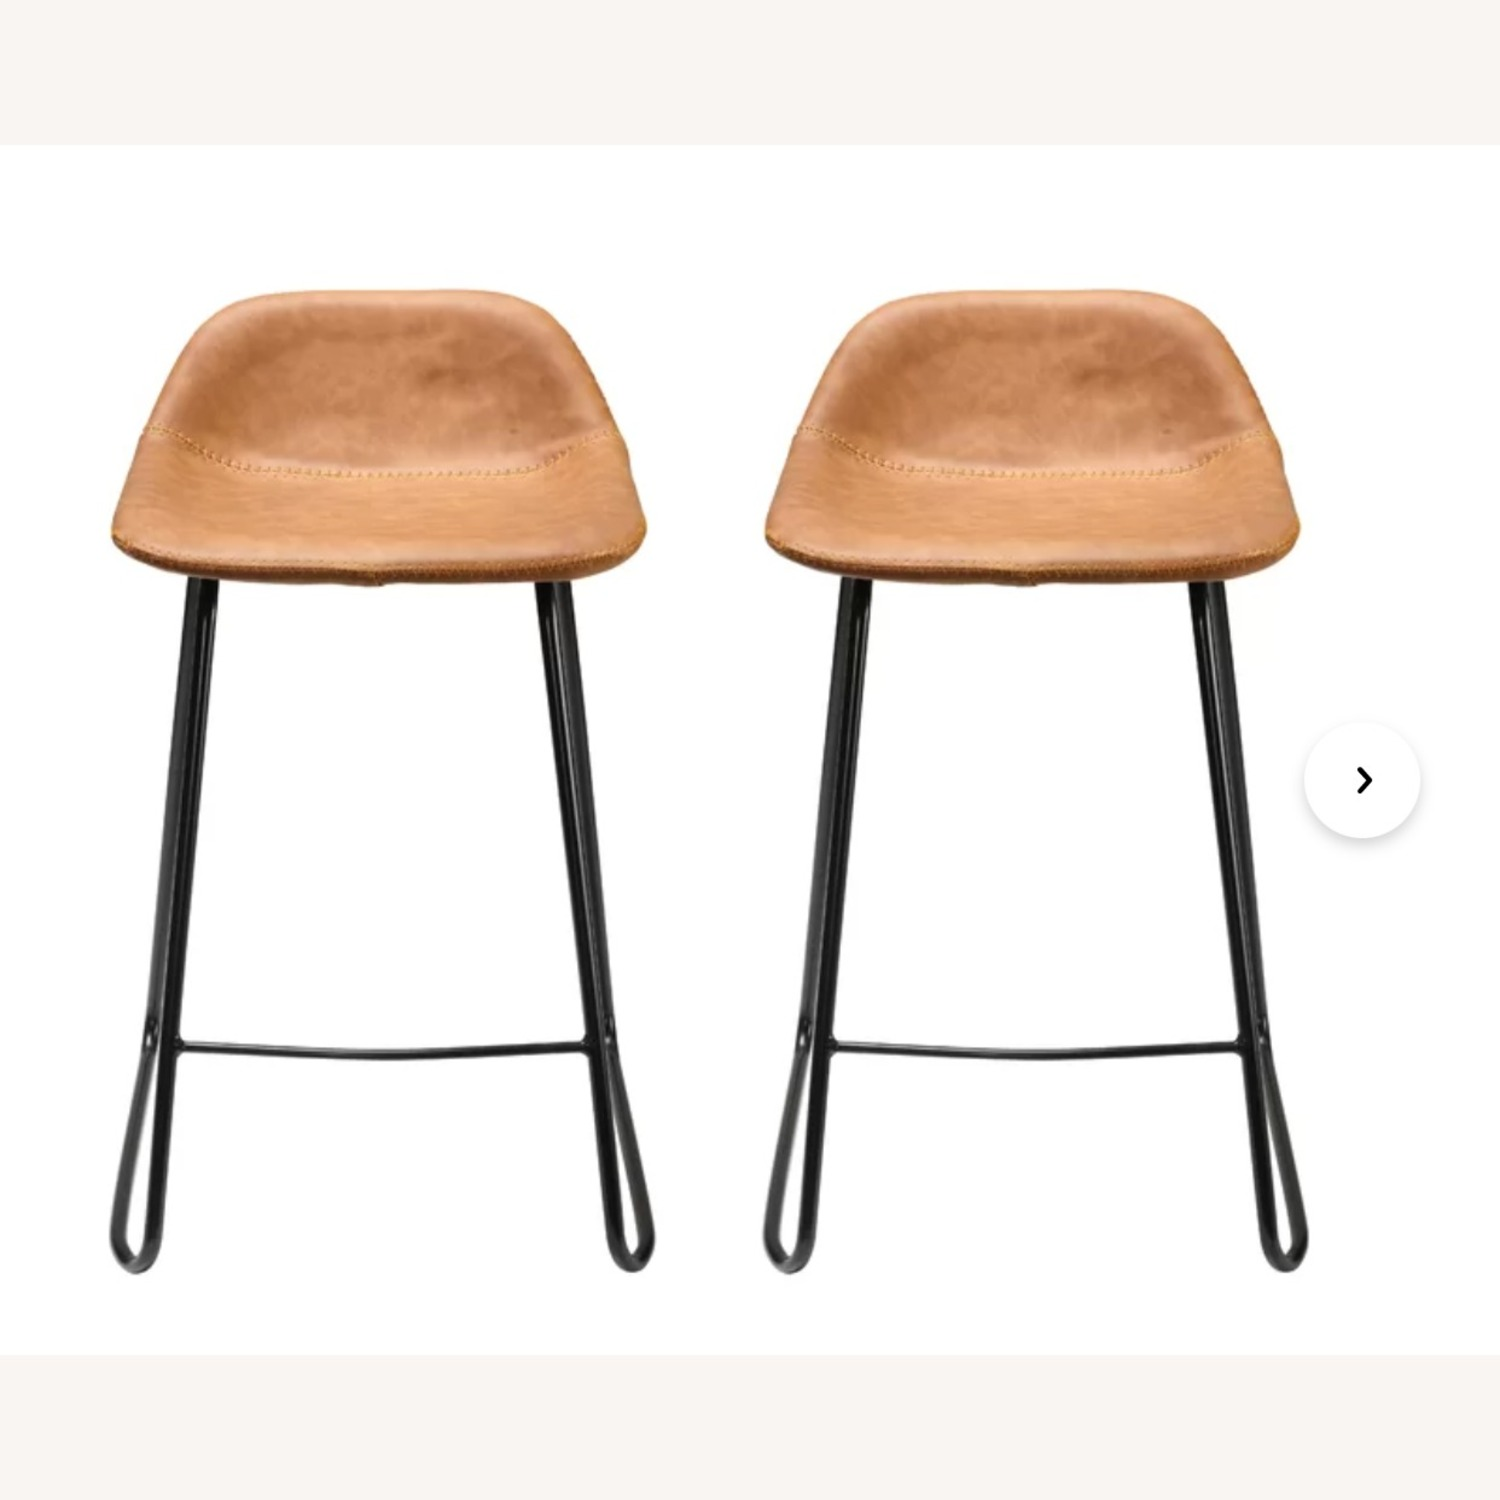 Wayfair Leather Bar Stools (2) Counter Height - image-4